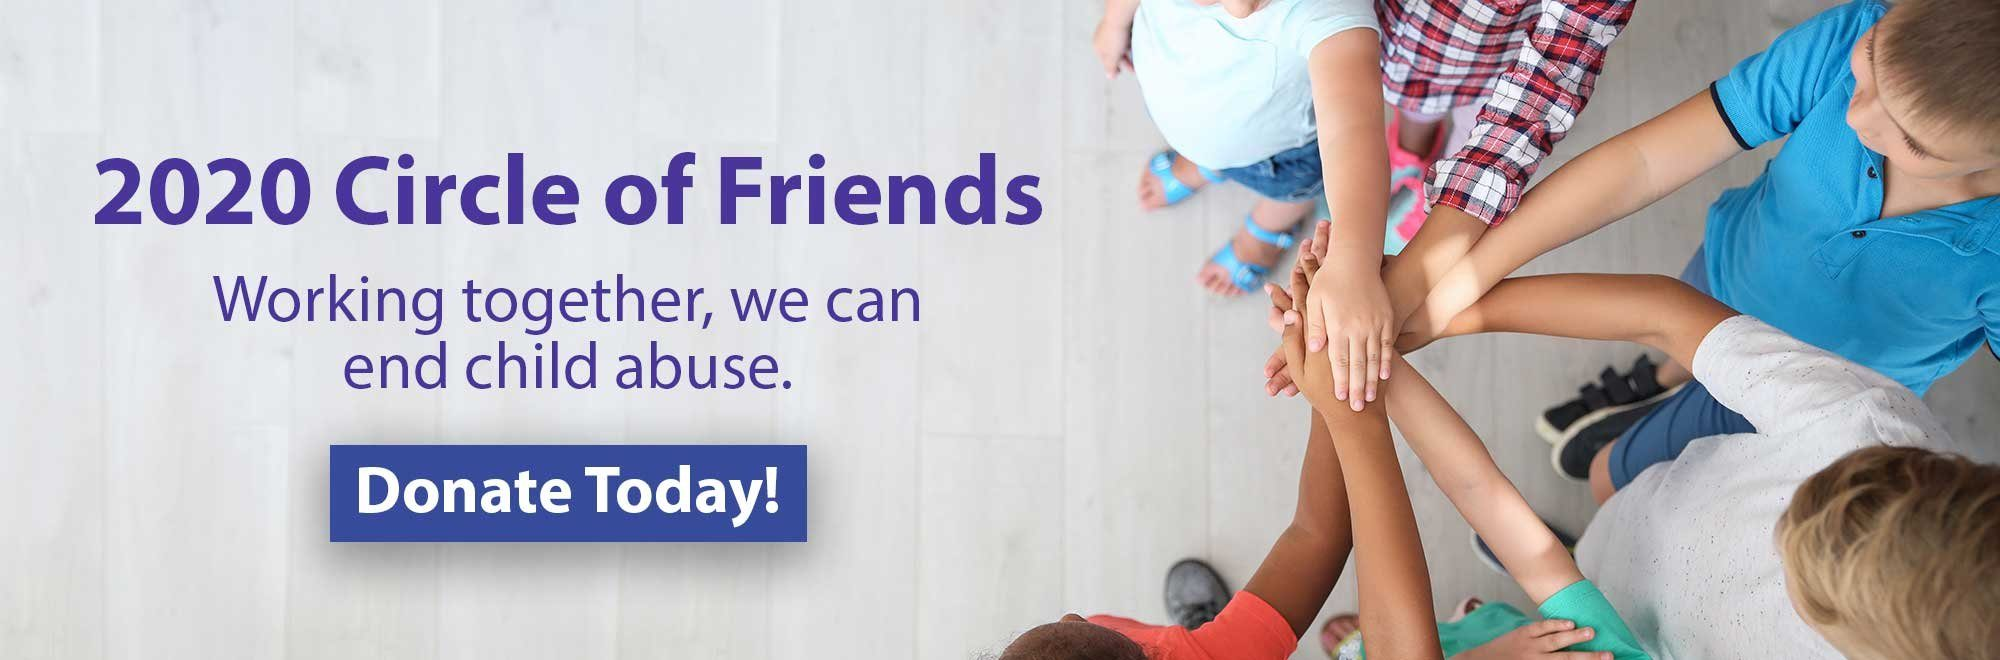 2020 Circle of Friends. Working together, we can end child abuse. Learn more.